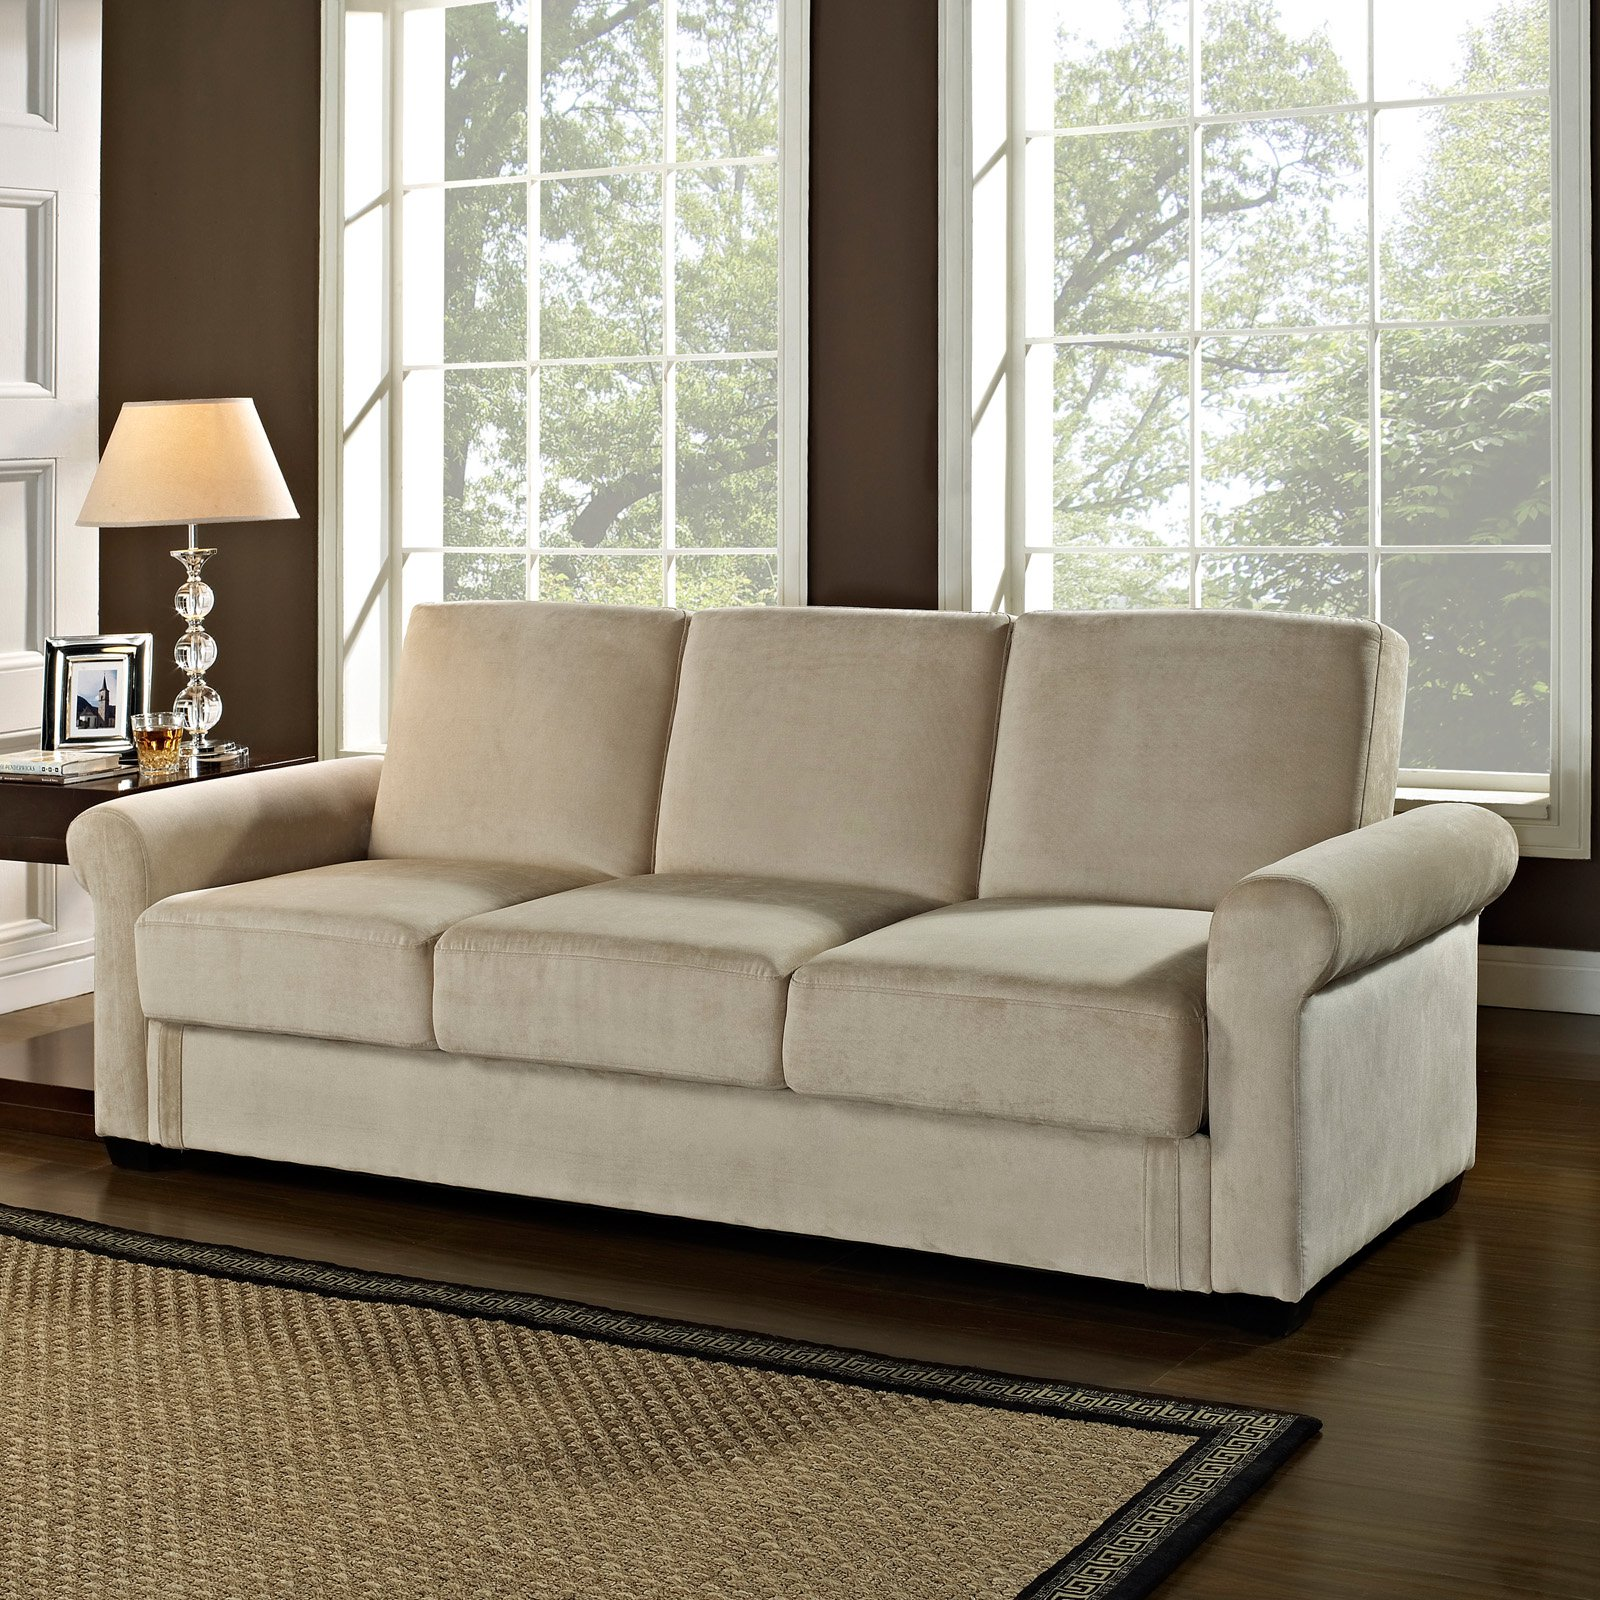 Serta Dream Thomas Convertible Sofa - Light Brown